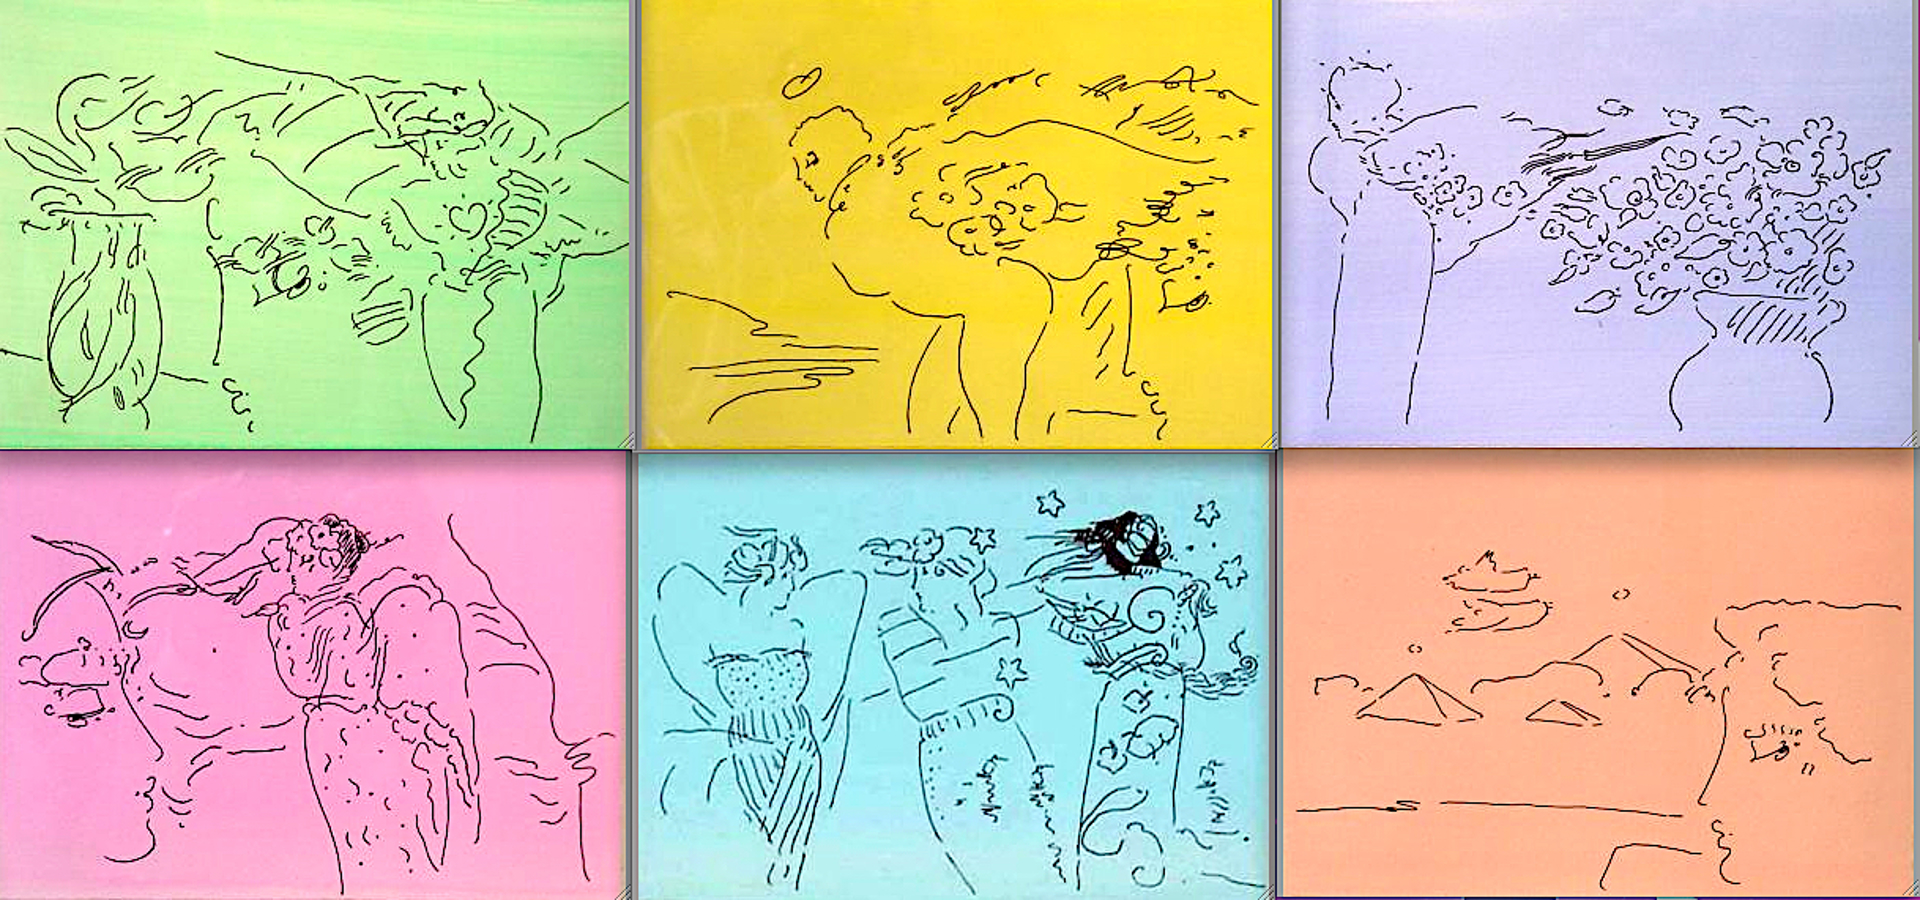 Angels Suite by Peter Max